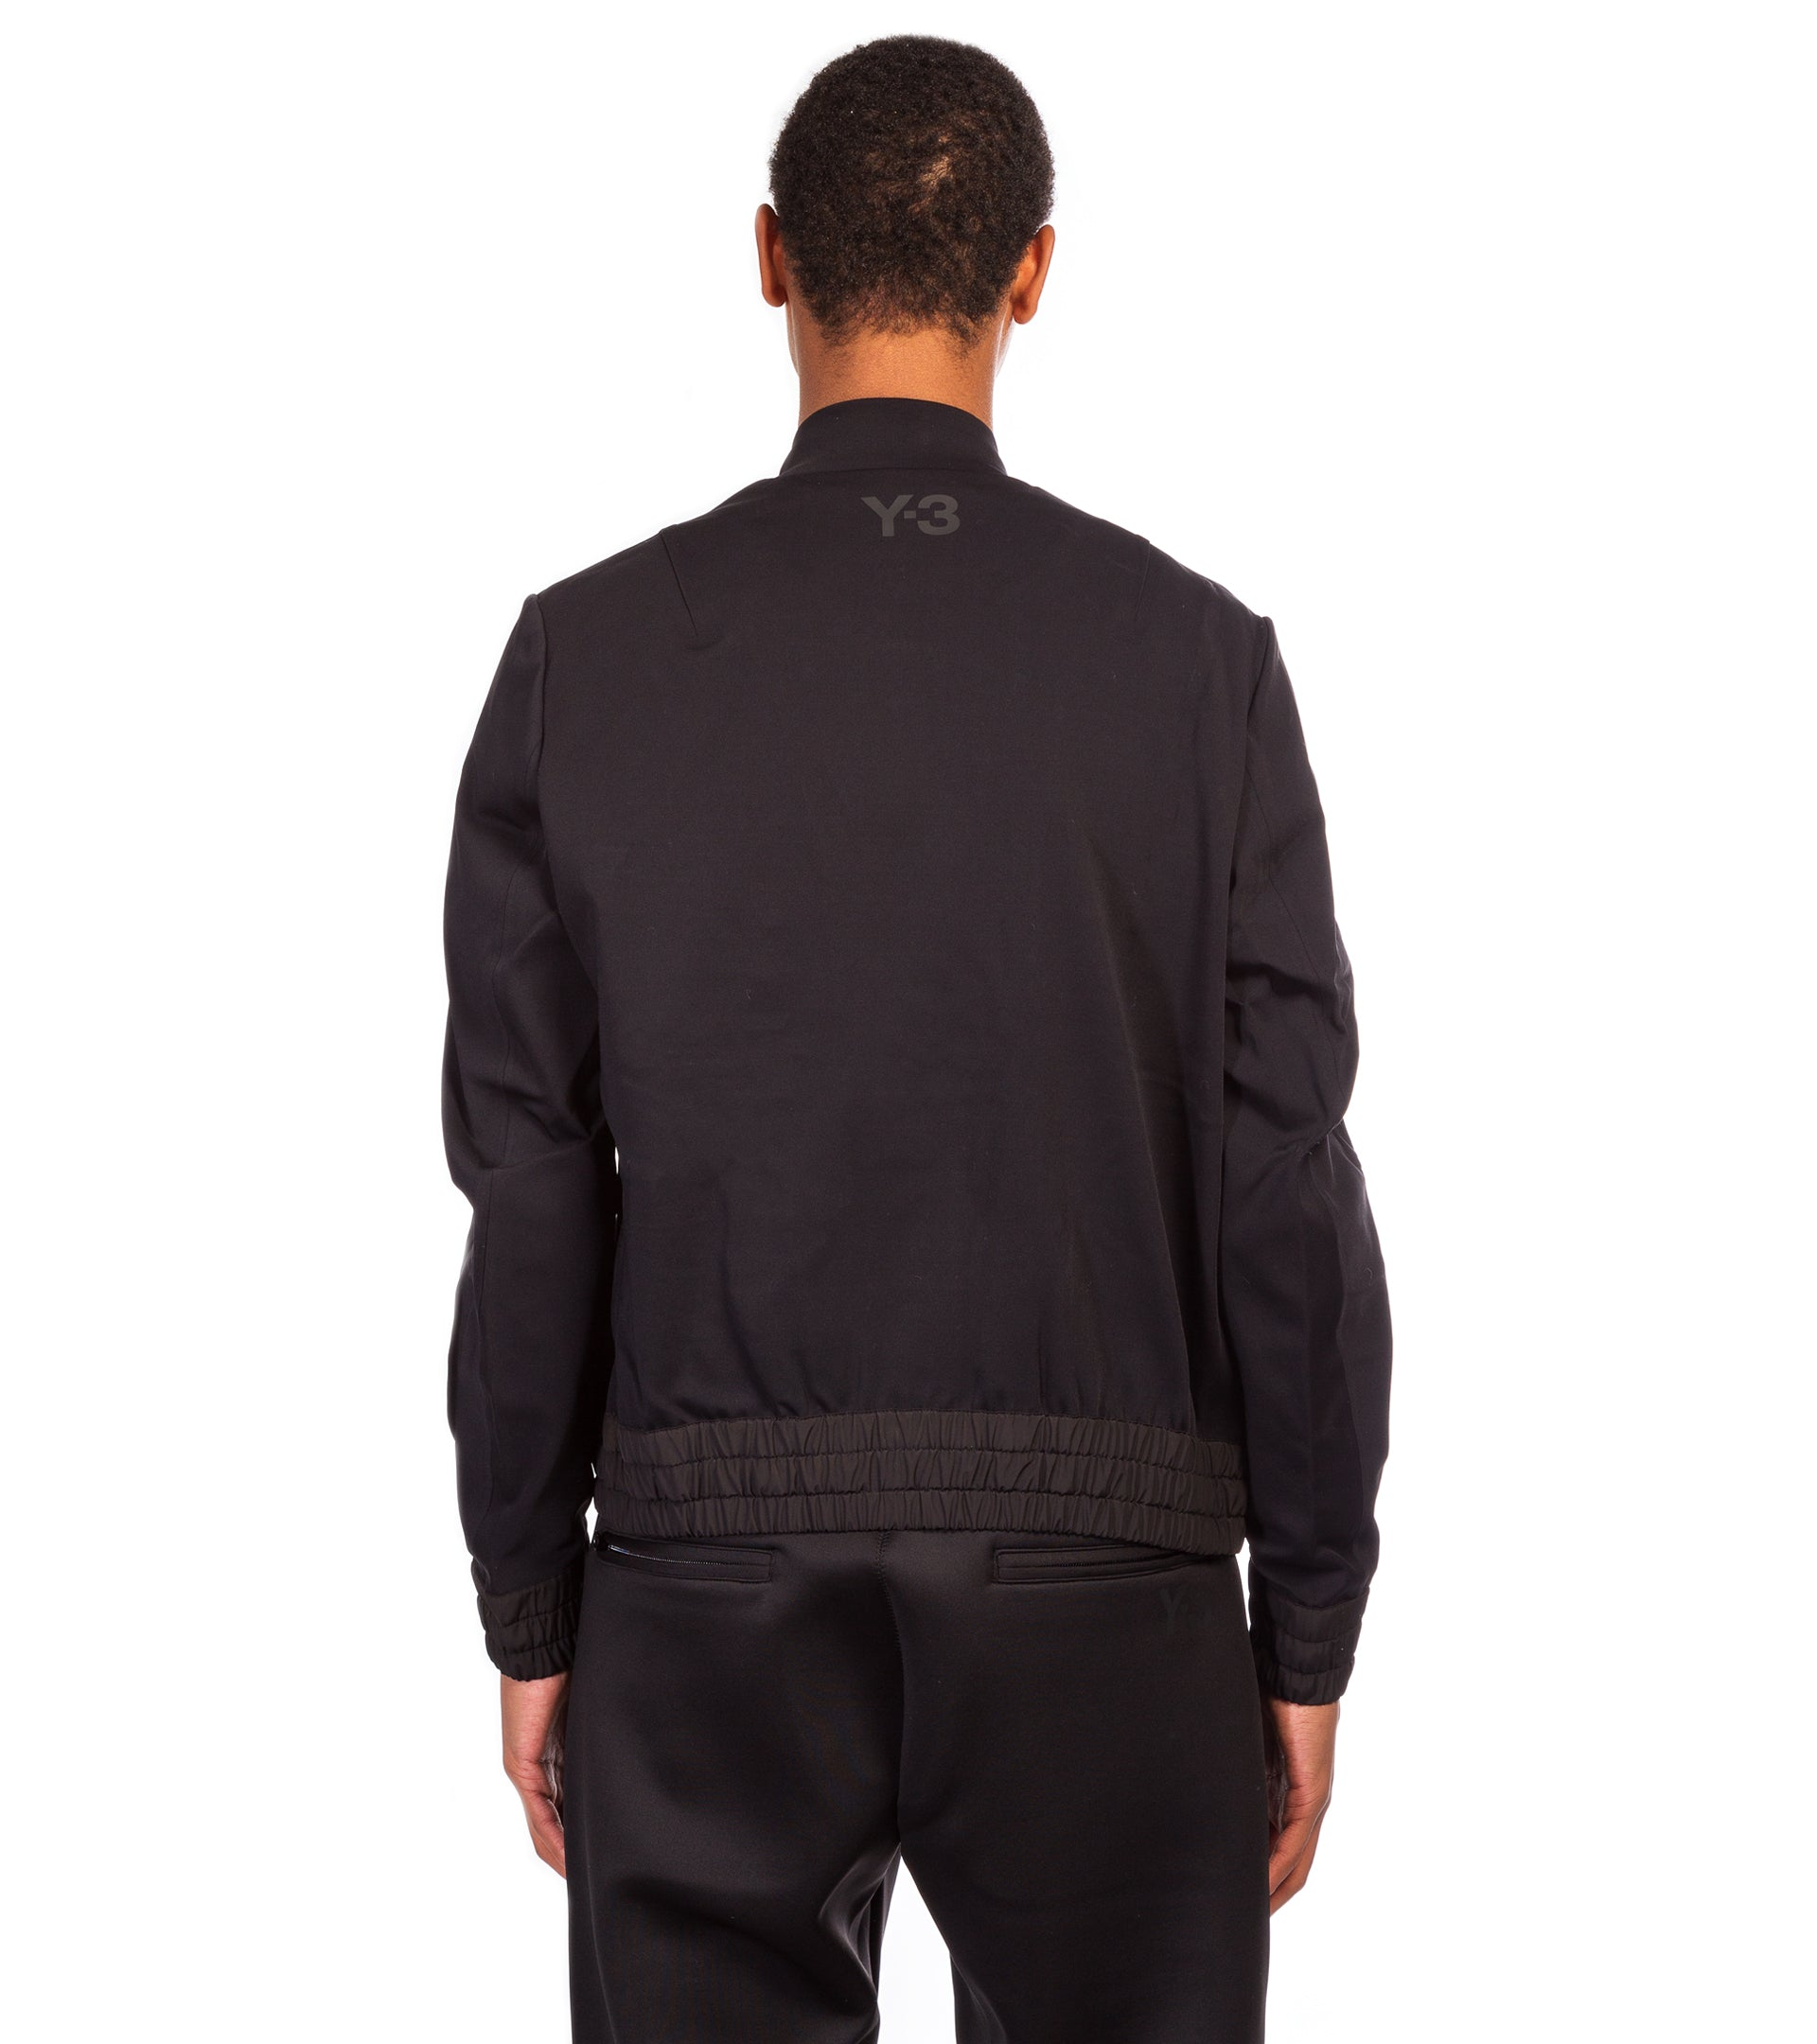 LUX FS BOMBER